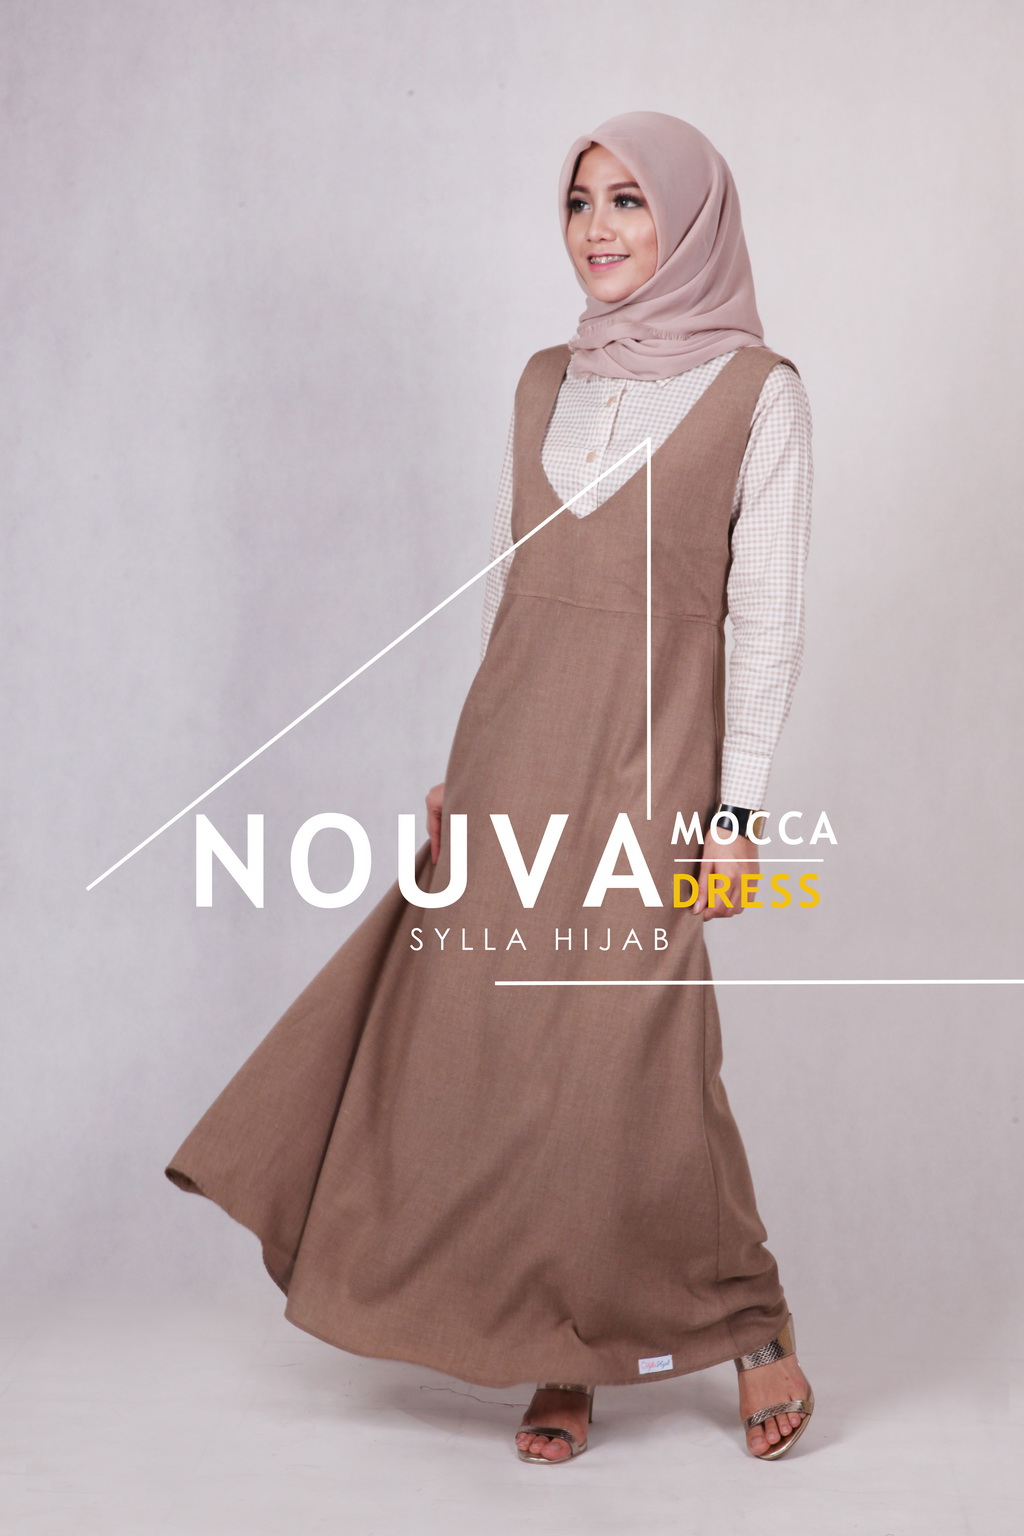 Nouva Dress SYYLA HIJAB